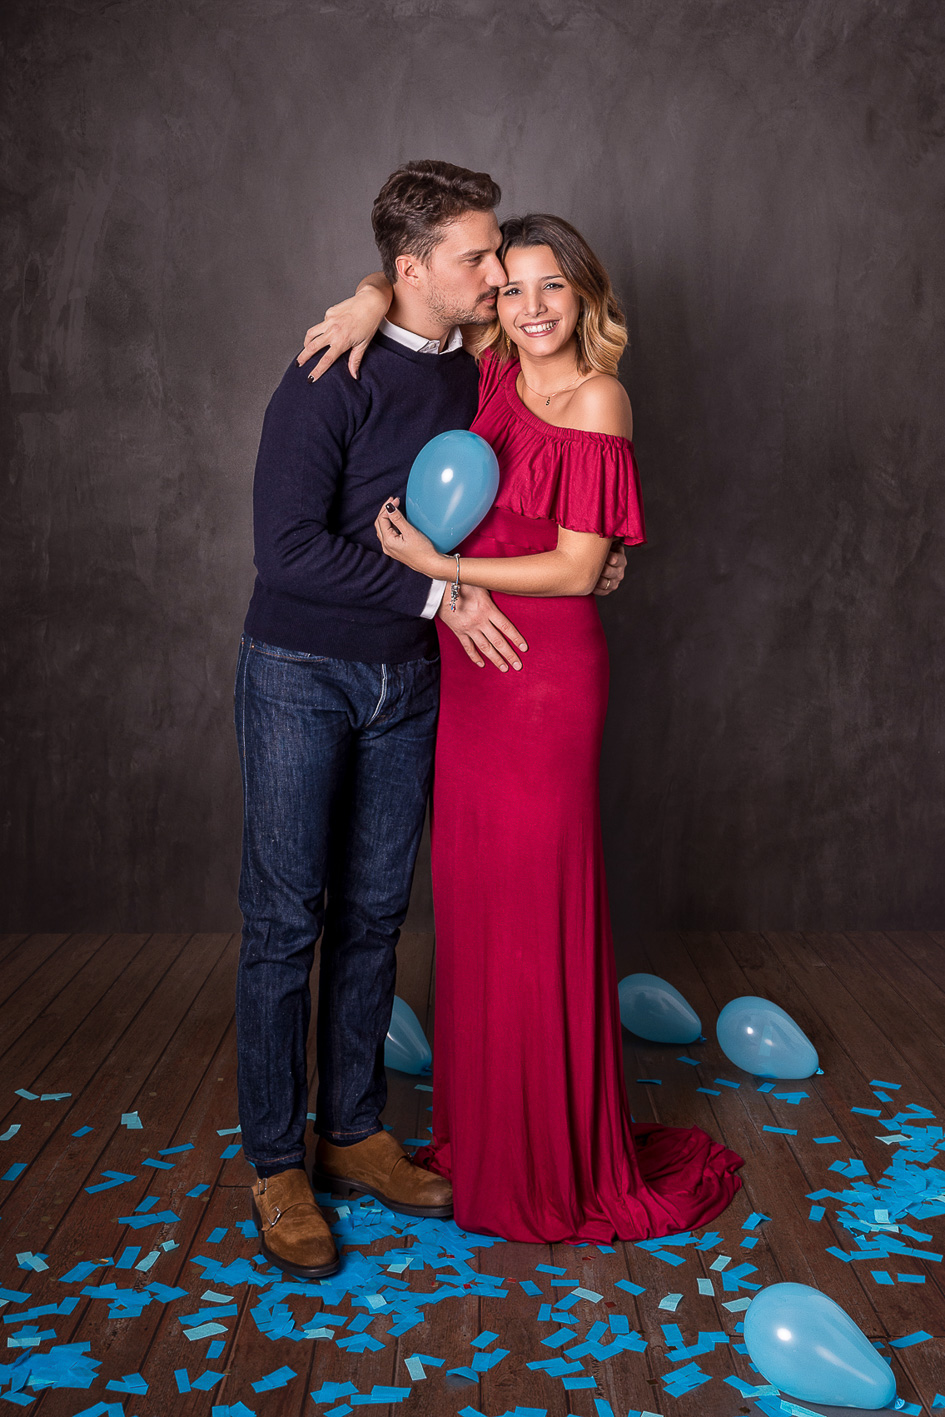 gender-reveal-shoot-tagg-photography-23